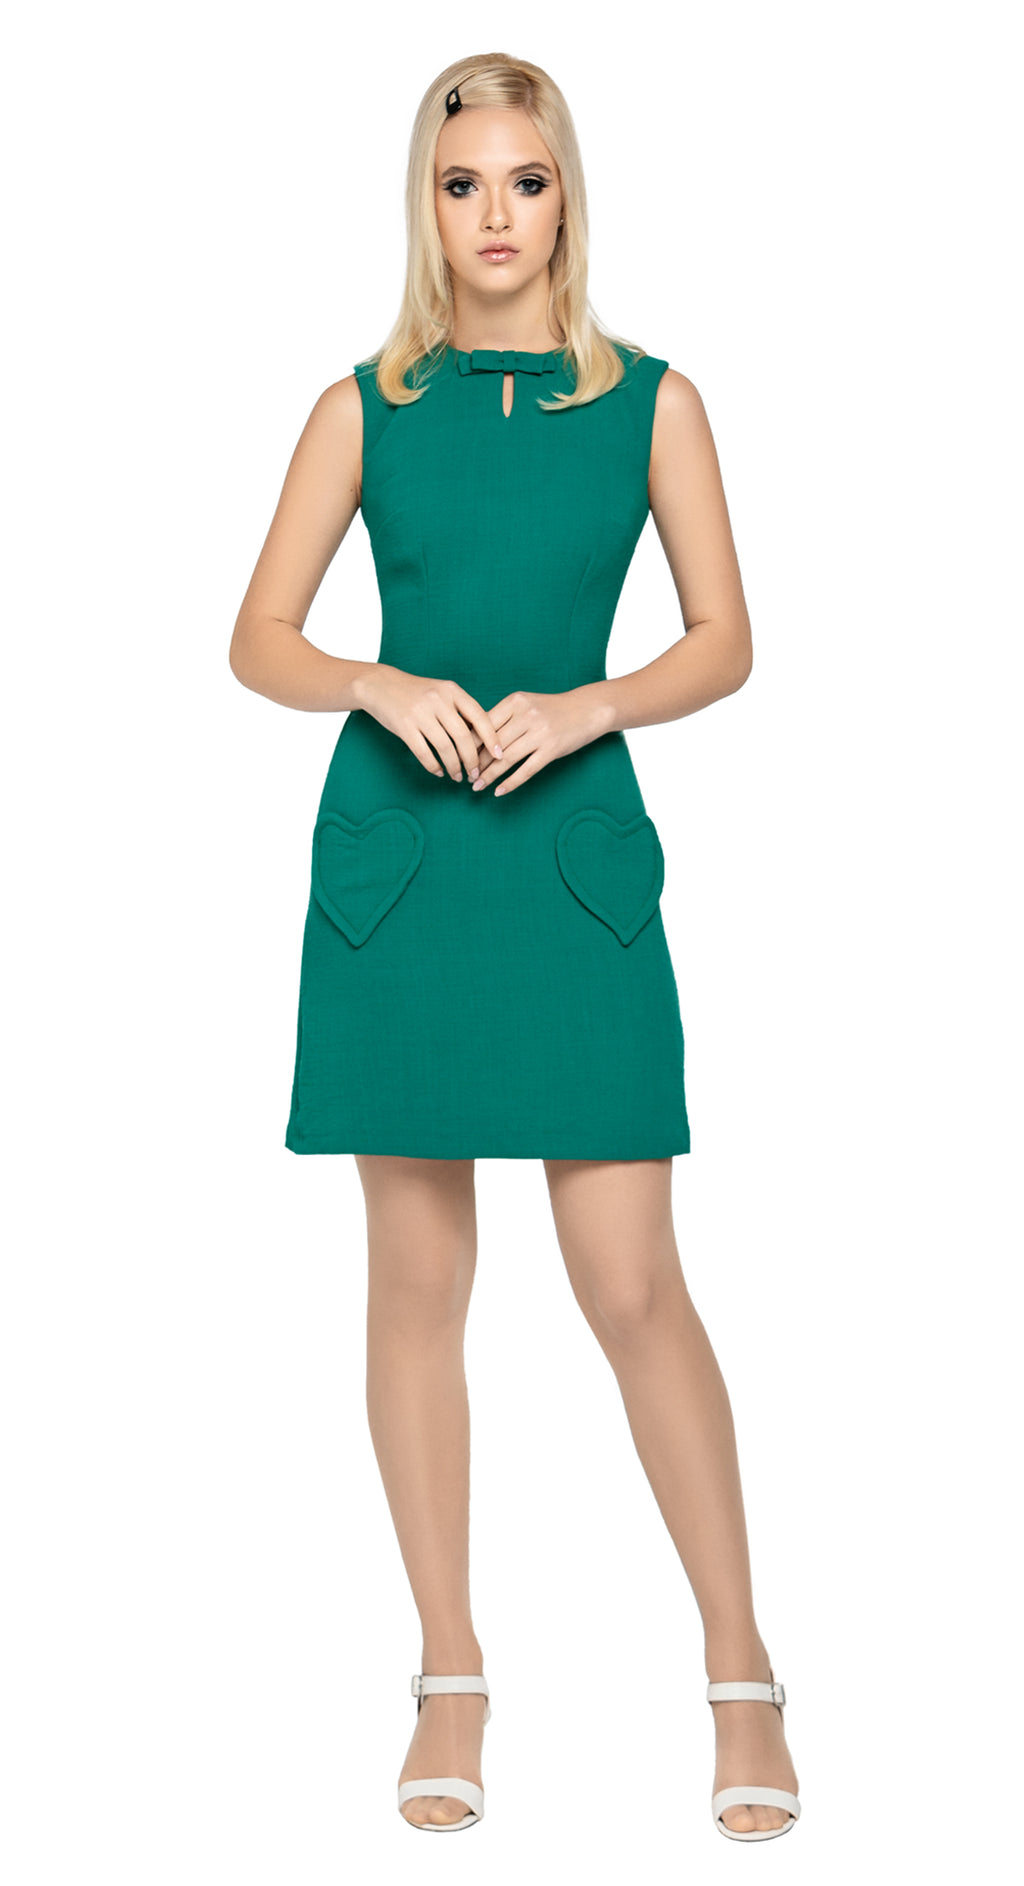 At work or play, fitted Spanish viscose/wool blend dress with unique heart shape functional pockets, delicate bow detailing and a slight cut out at the neckline. A very wearable and flattering style statement in a classical vintage green. A fully lined piece with back zipper closure.  Pairs perfectly with style our Vintage Green Jacket for a high fashion functional statement.  Choose bespoke to add desired sleeve length or for a different colour (please inquire).